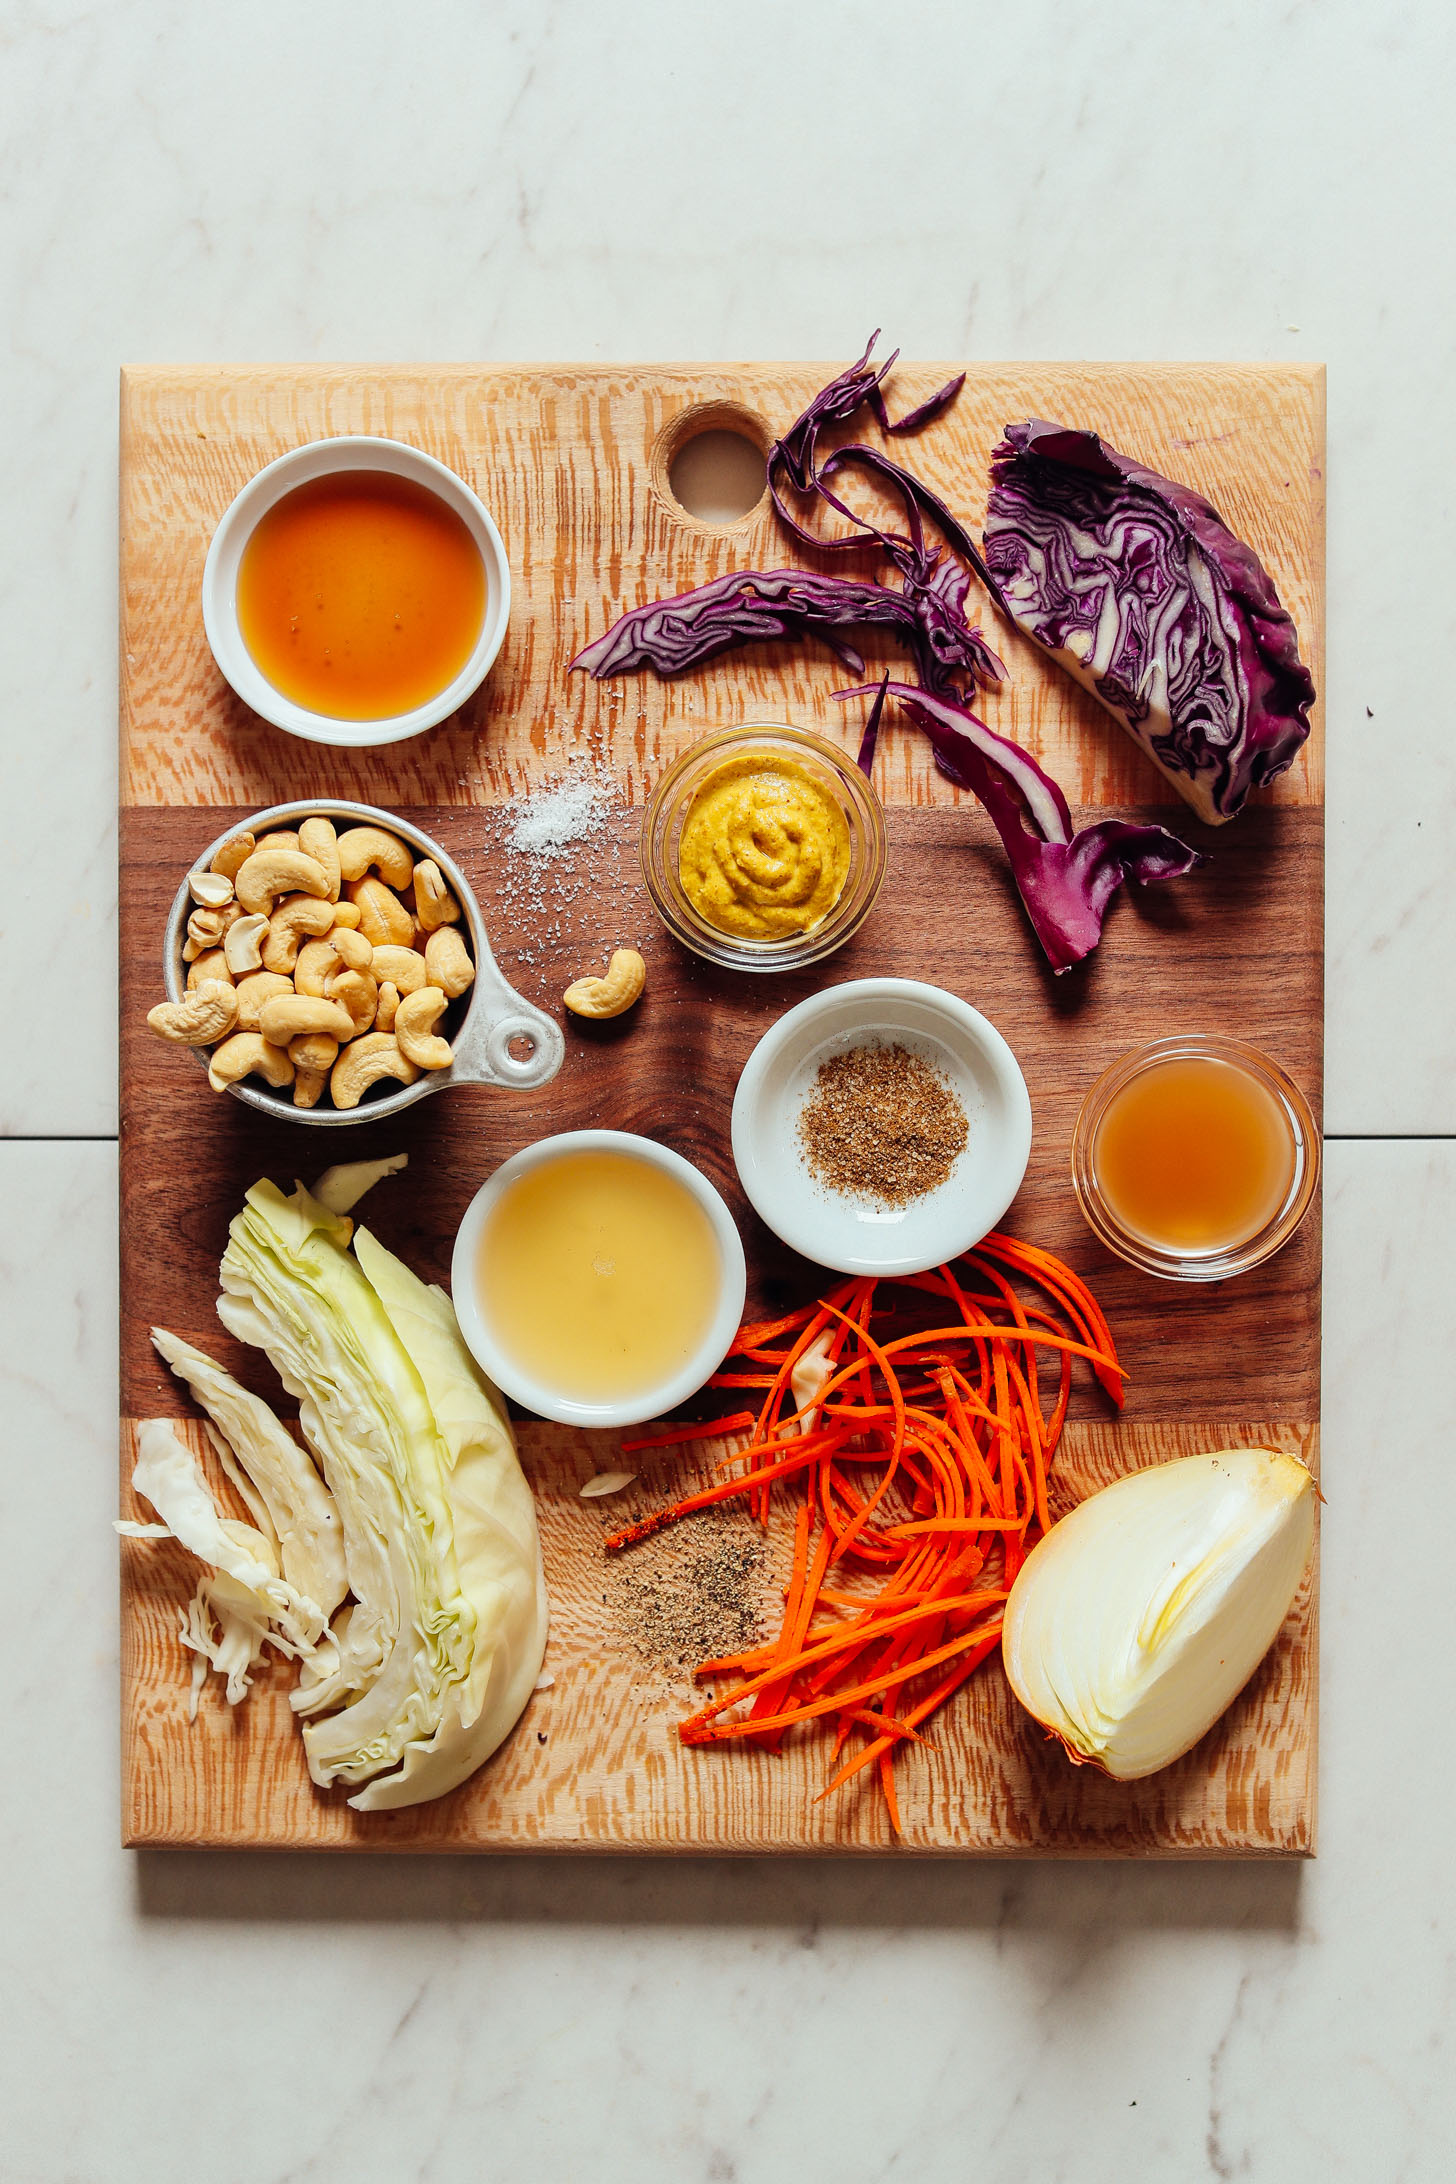 Cutting board filled with ingredients for making our healthy homemade vegan coleslaw recipe